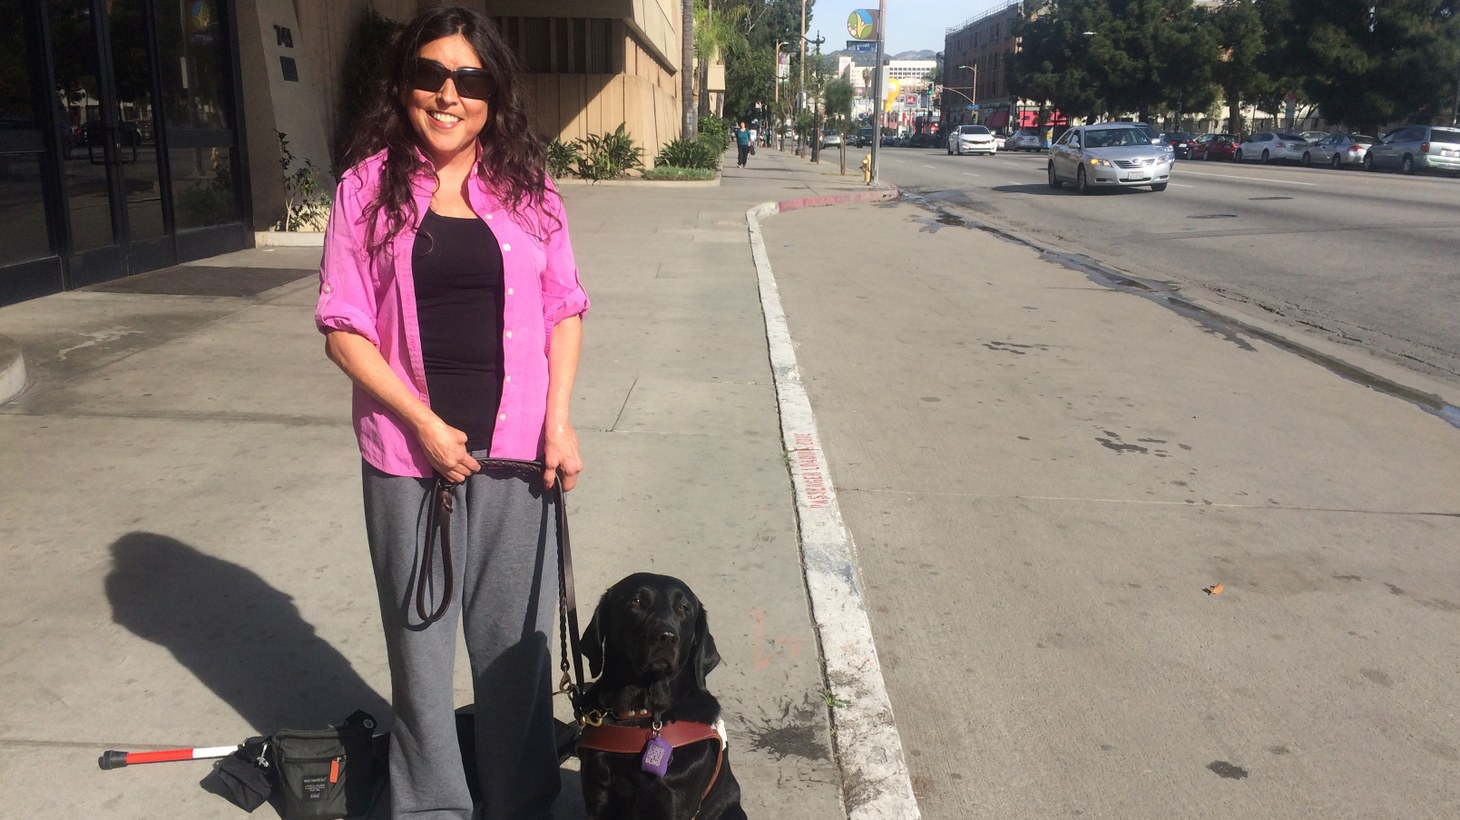 Melissa Hudson and her guide dog.